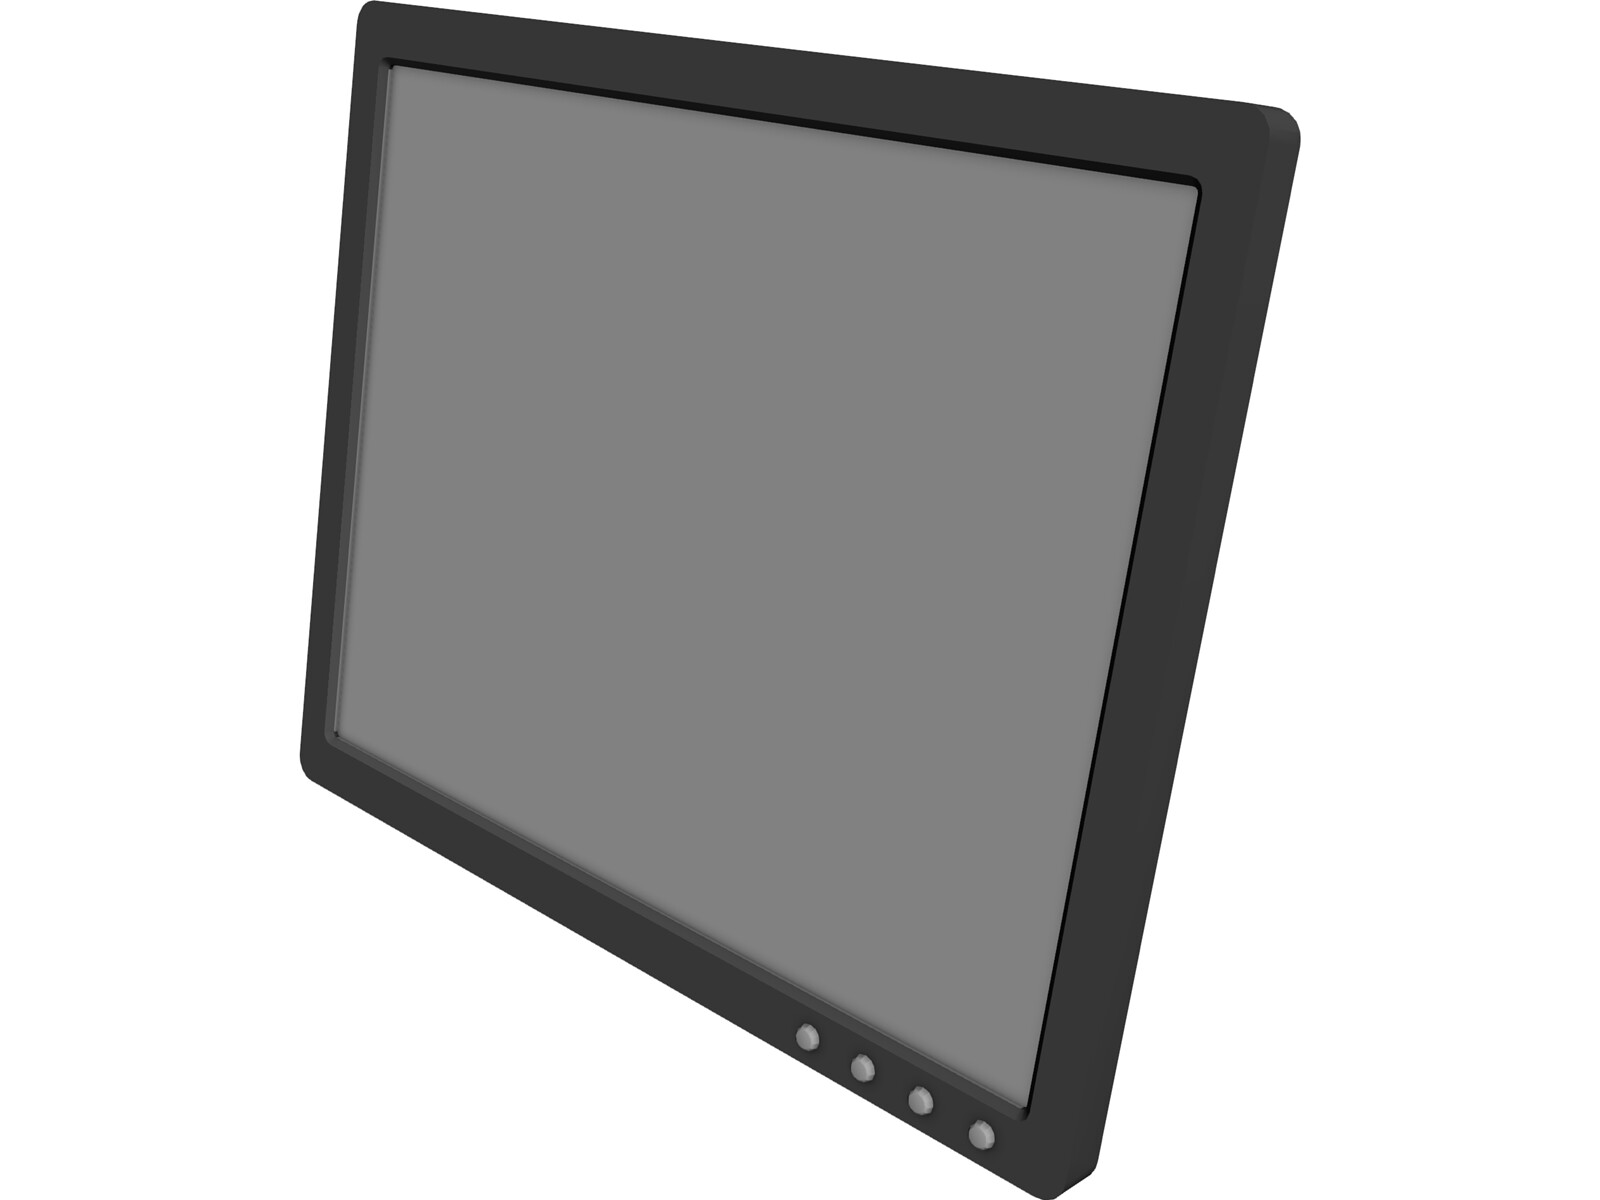 19inch LCD Monitor 3D Model